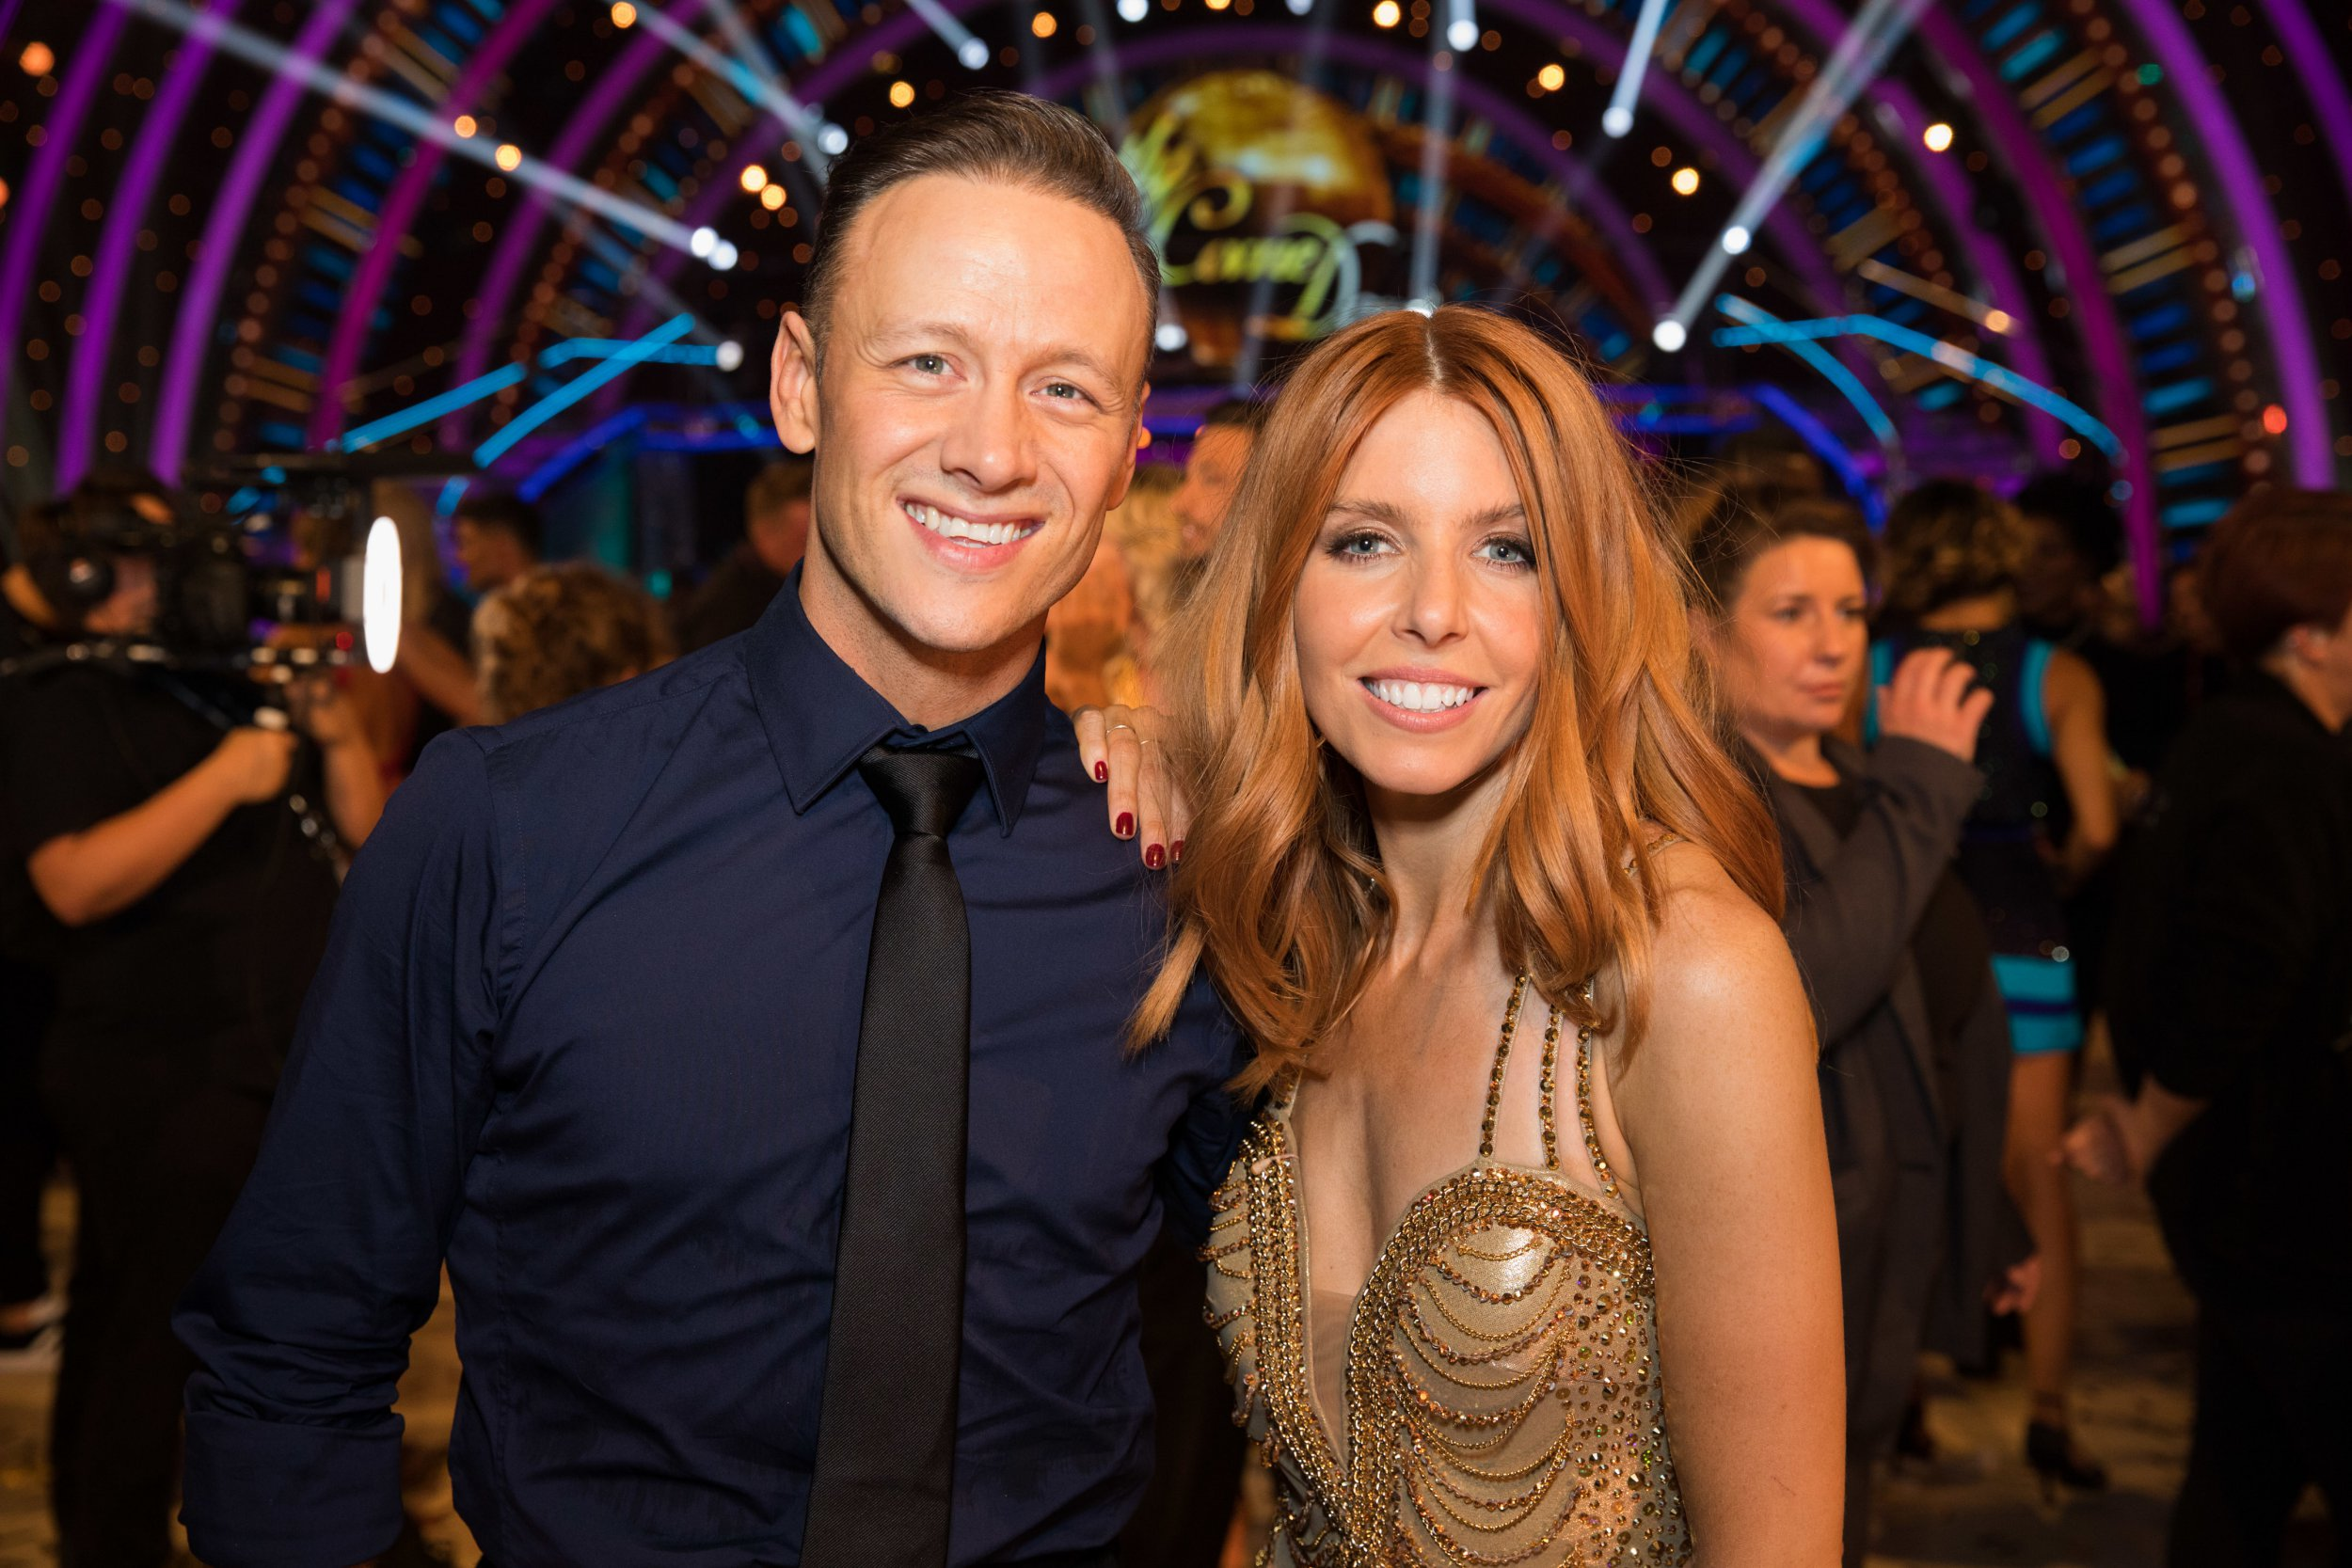 EMBARGOED TO 2100 SATURDAY SEPTEMBER 8 For use in UK, Ireland or Benelux countries only Undated BBC handout photo of Kevin Clifton and Stacey Dooley during the return of the BBC One show, Strictly Come Dancing. PRESS ASSOCIATION Photo. Issue date: Saturday September 8, 2018. See PA story SHOWBIZ Strictly. Photo credit should read: BBC/PA Wire NOTE TO EDITORS: Not for use more than 21 days after issue. You may use this picture without charge only for the purpose of publicising or reporting on current BBC programming, personnel or other BBC output or activity within 21 days of issue. Any use after that time MUST be cleared through BBC Picture Publicity. Please credit the image to the BBC and any named photographer or independent programme maker, as described in the caption.